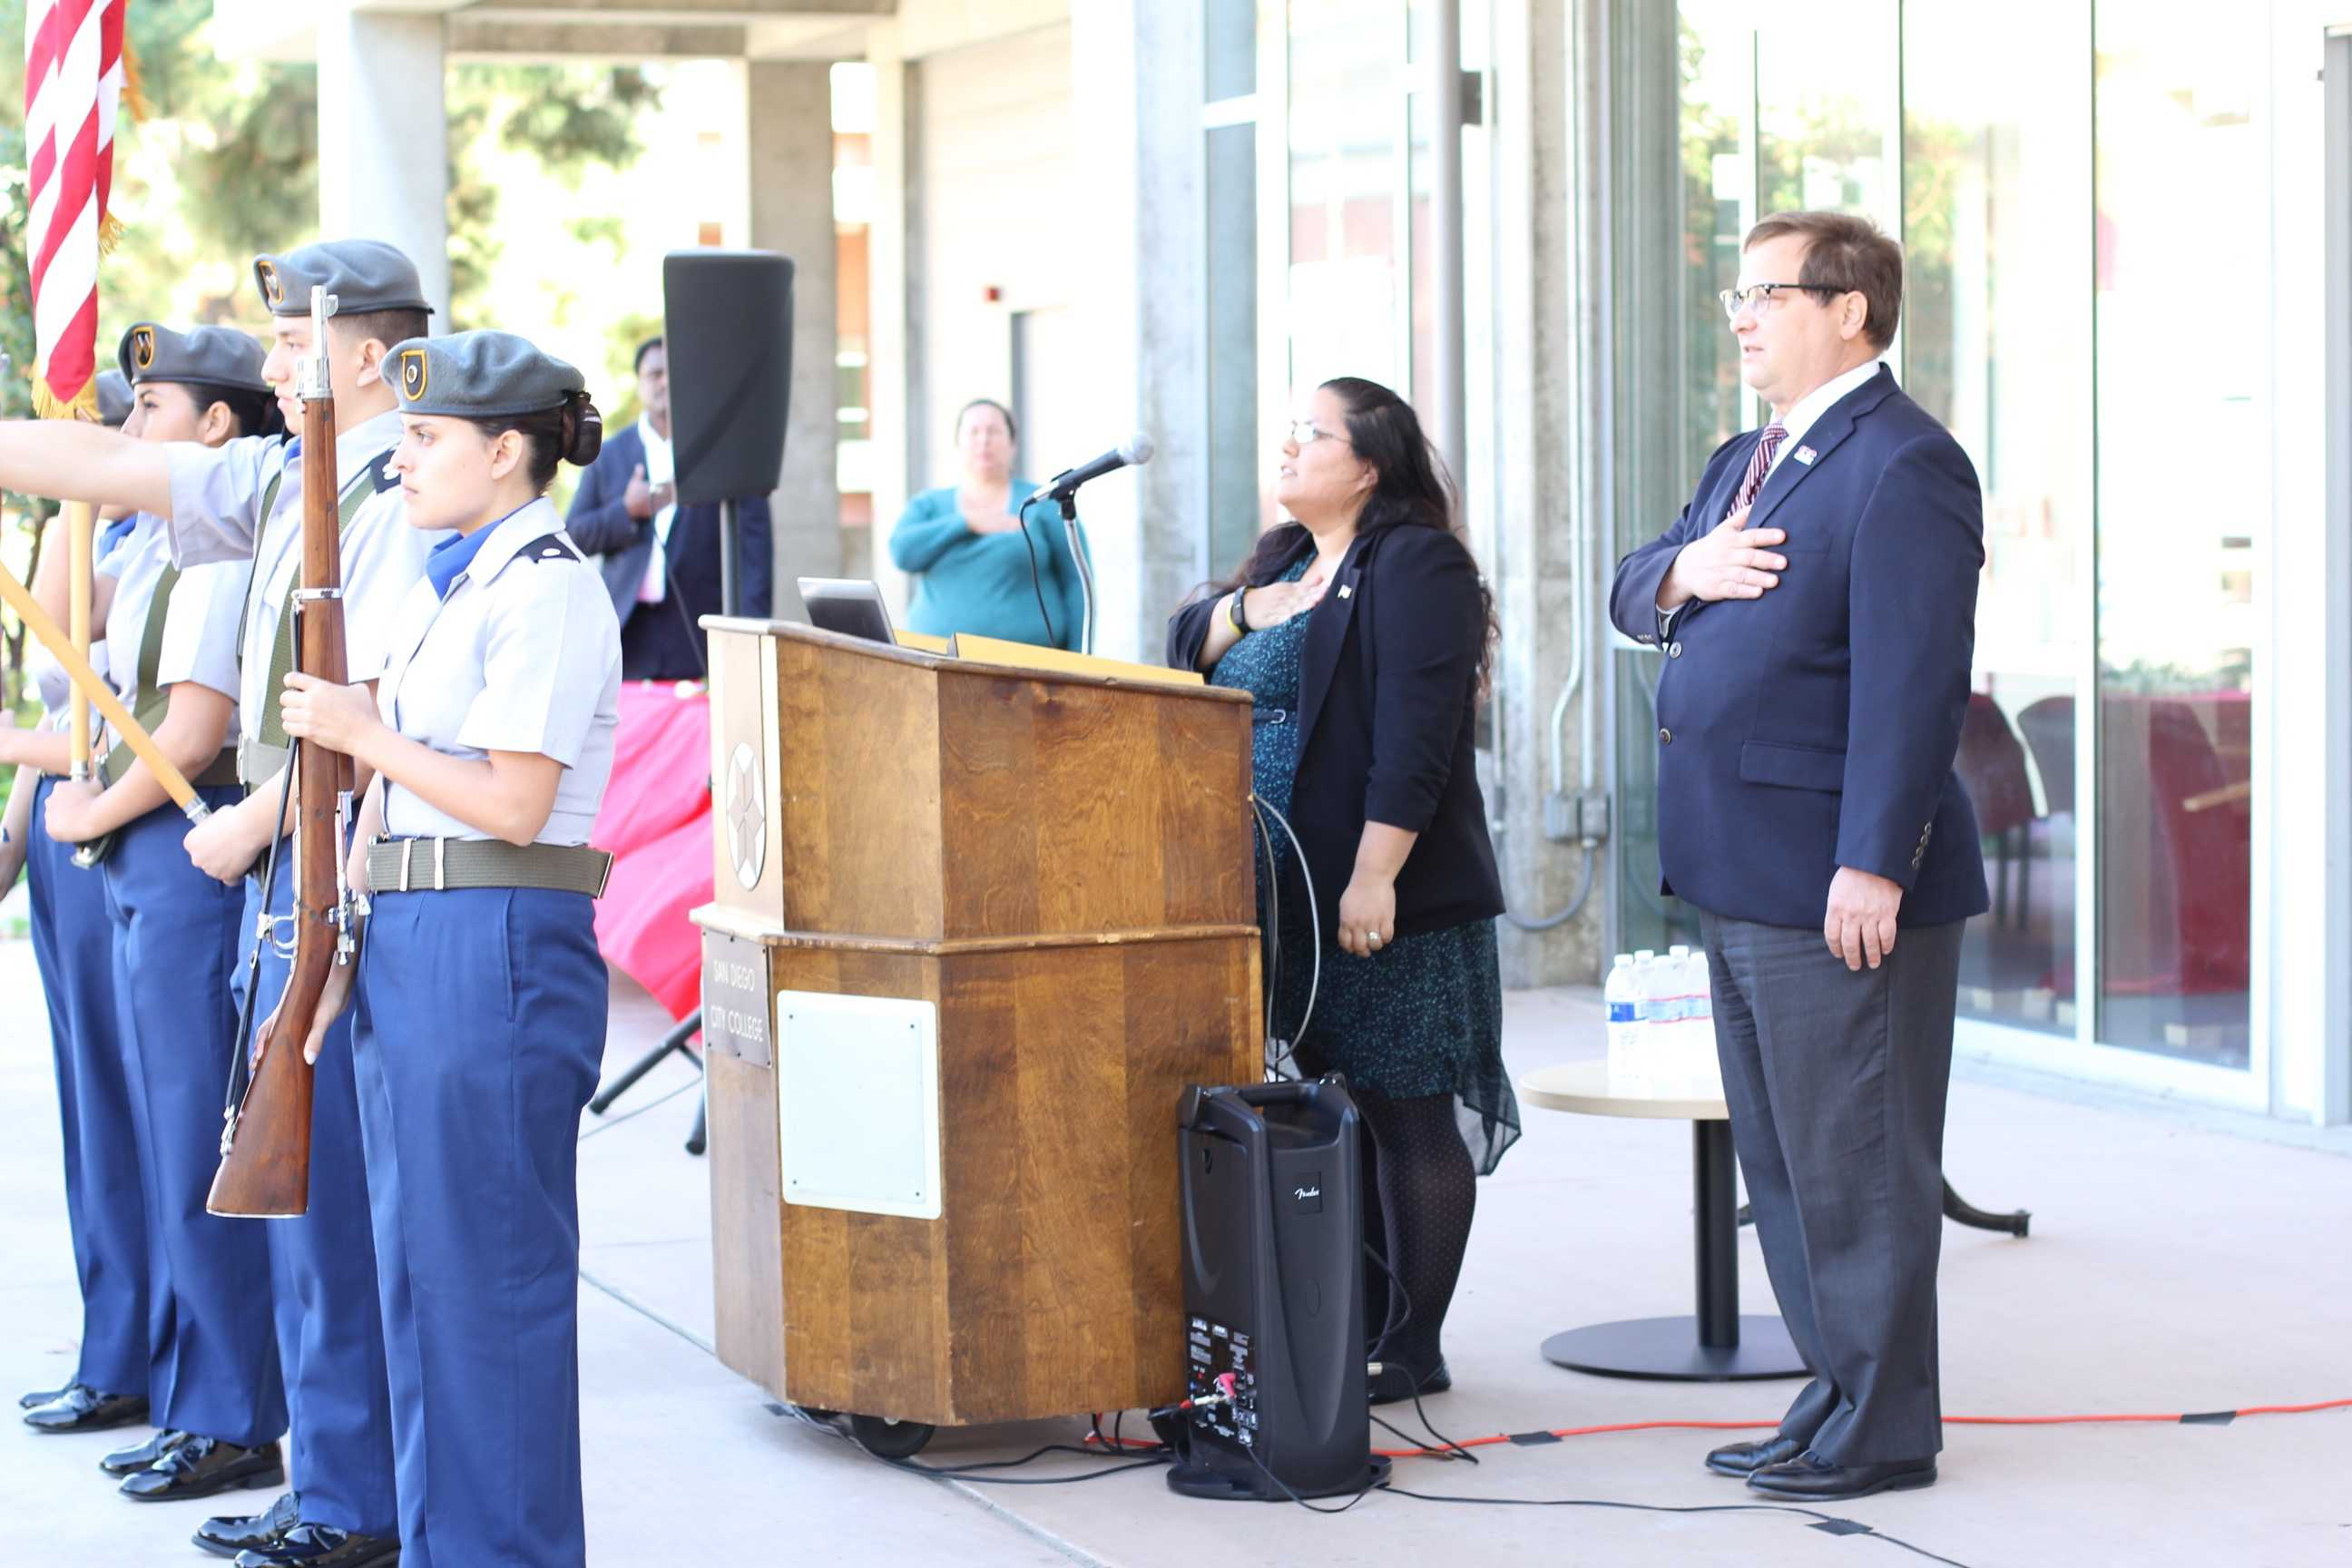 Associated Students Government President Laura Benavidez (center) led the recital of the Pledge of Allegiance during the Veterans Day event on Nov. 12. Photo credit: Katherine Salindayao-White